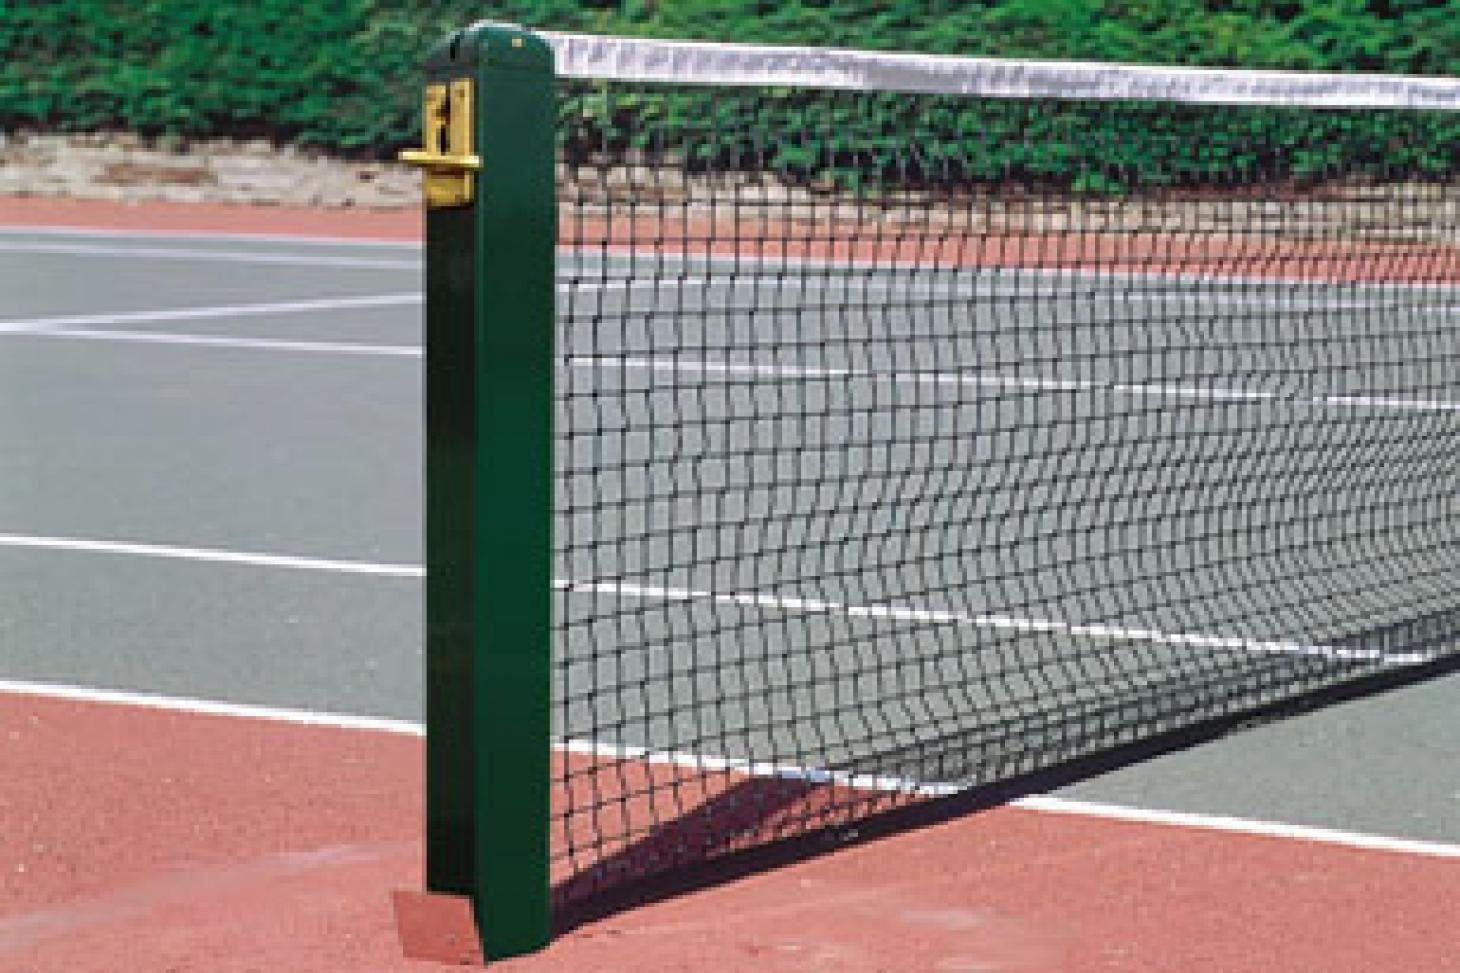 Harrods Sports Ground Outdoor | Concrete tennis court